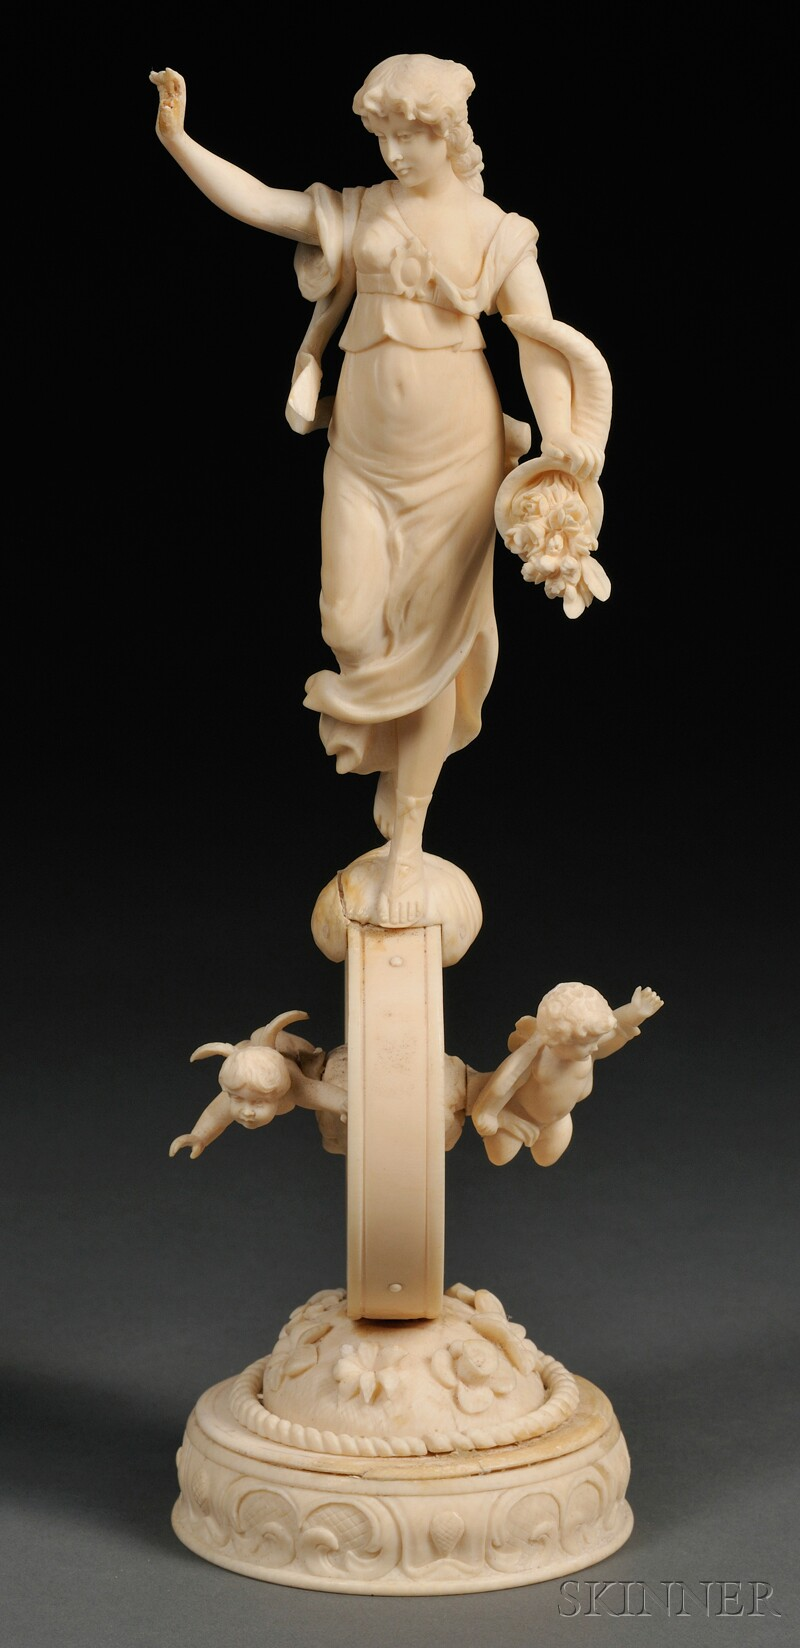 Carved Ivory Figure of Fortune on Her Wheel